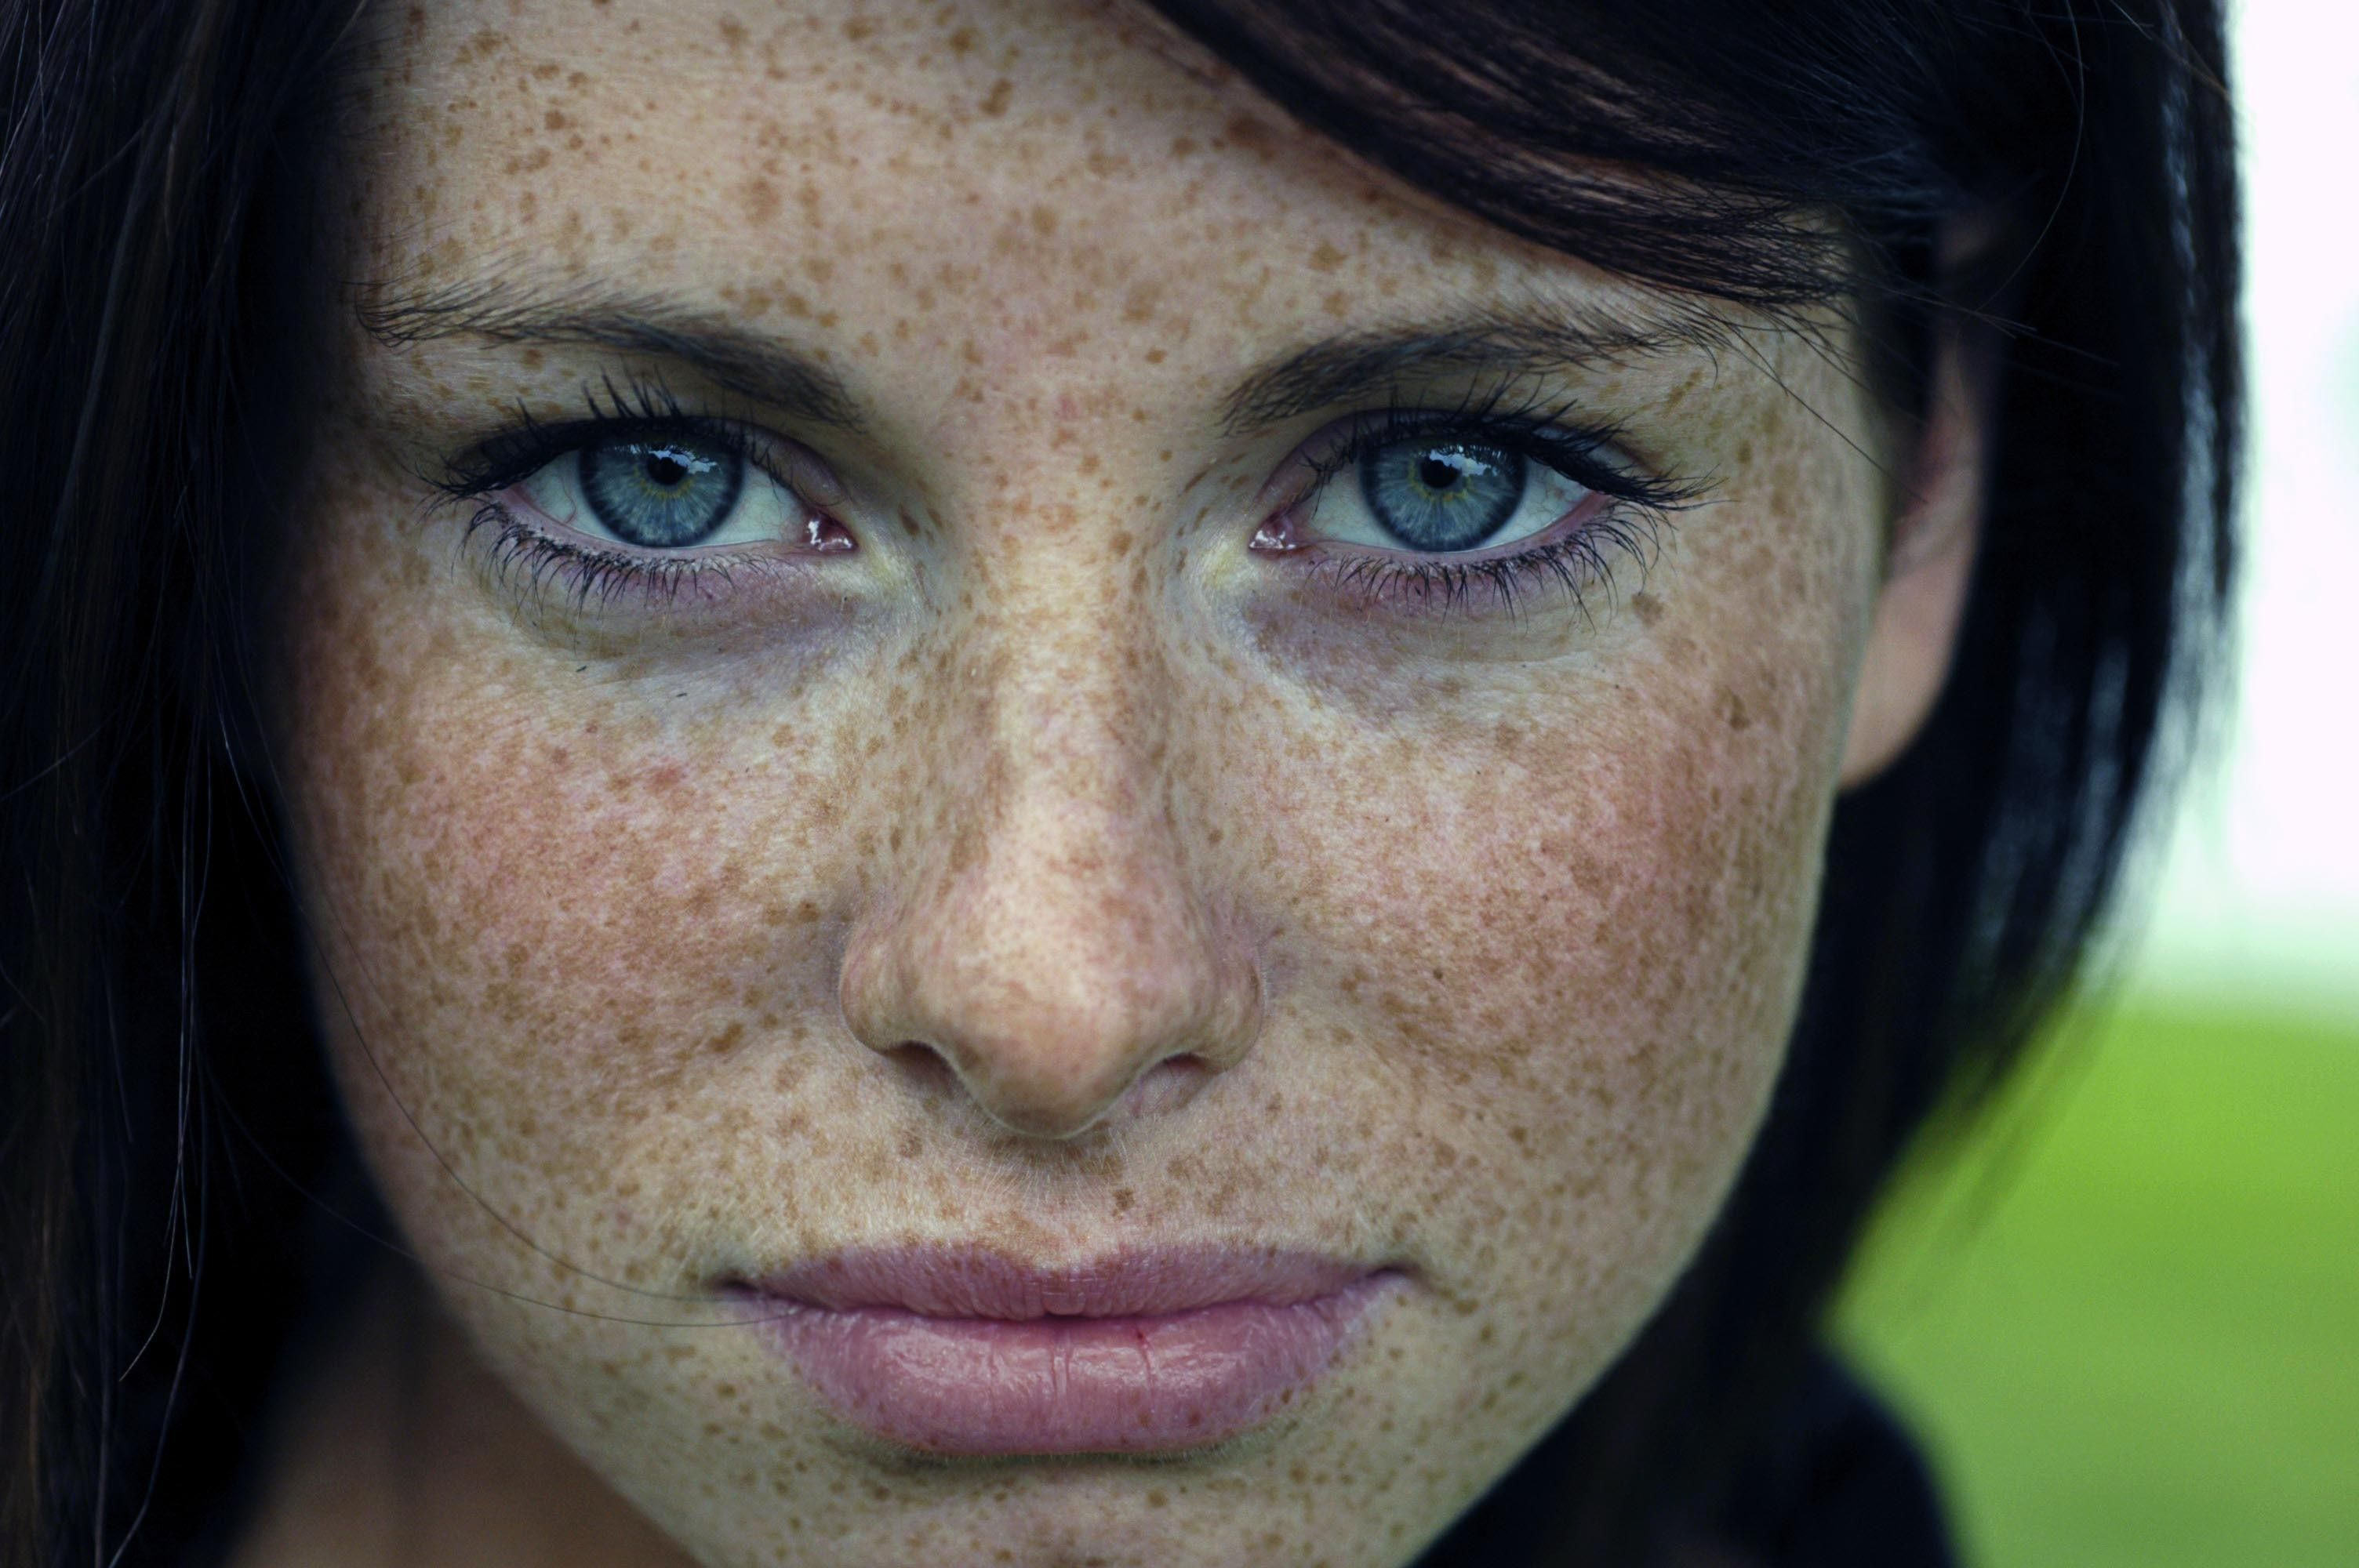 how to get rid of eye freckles